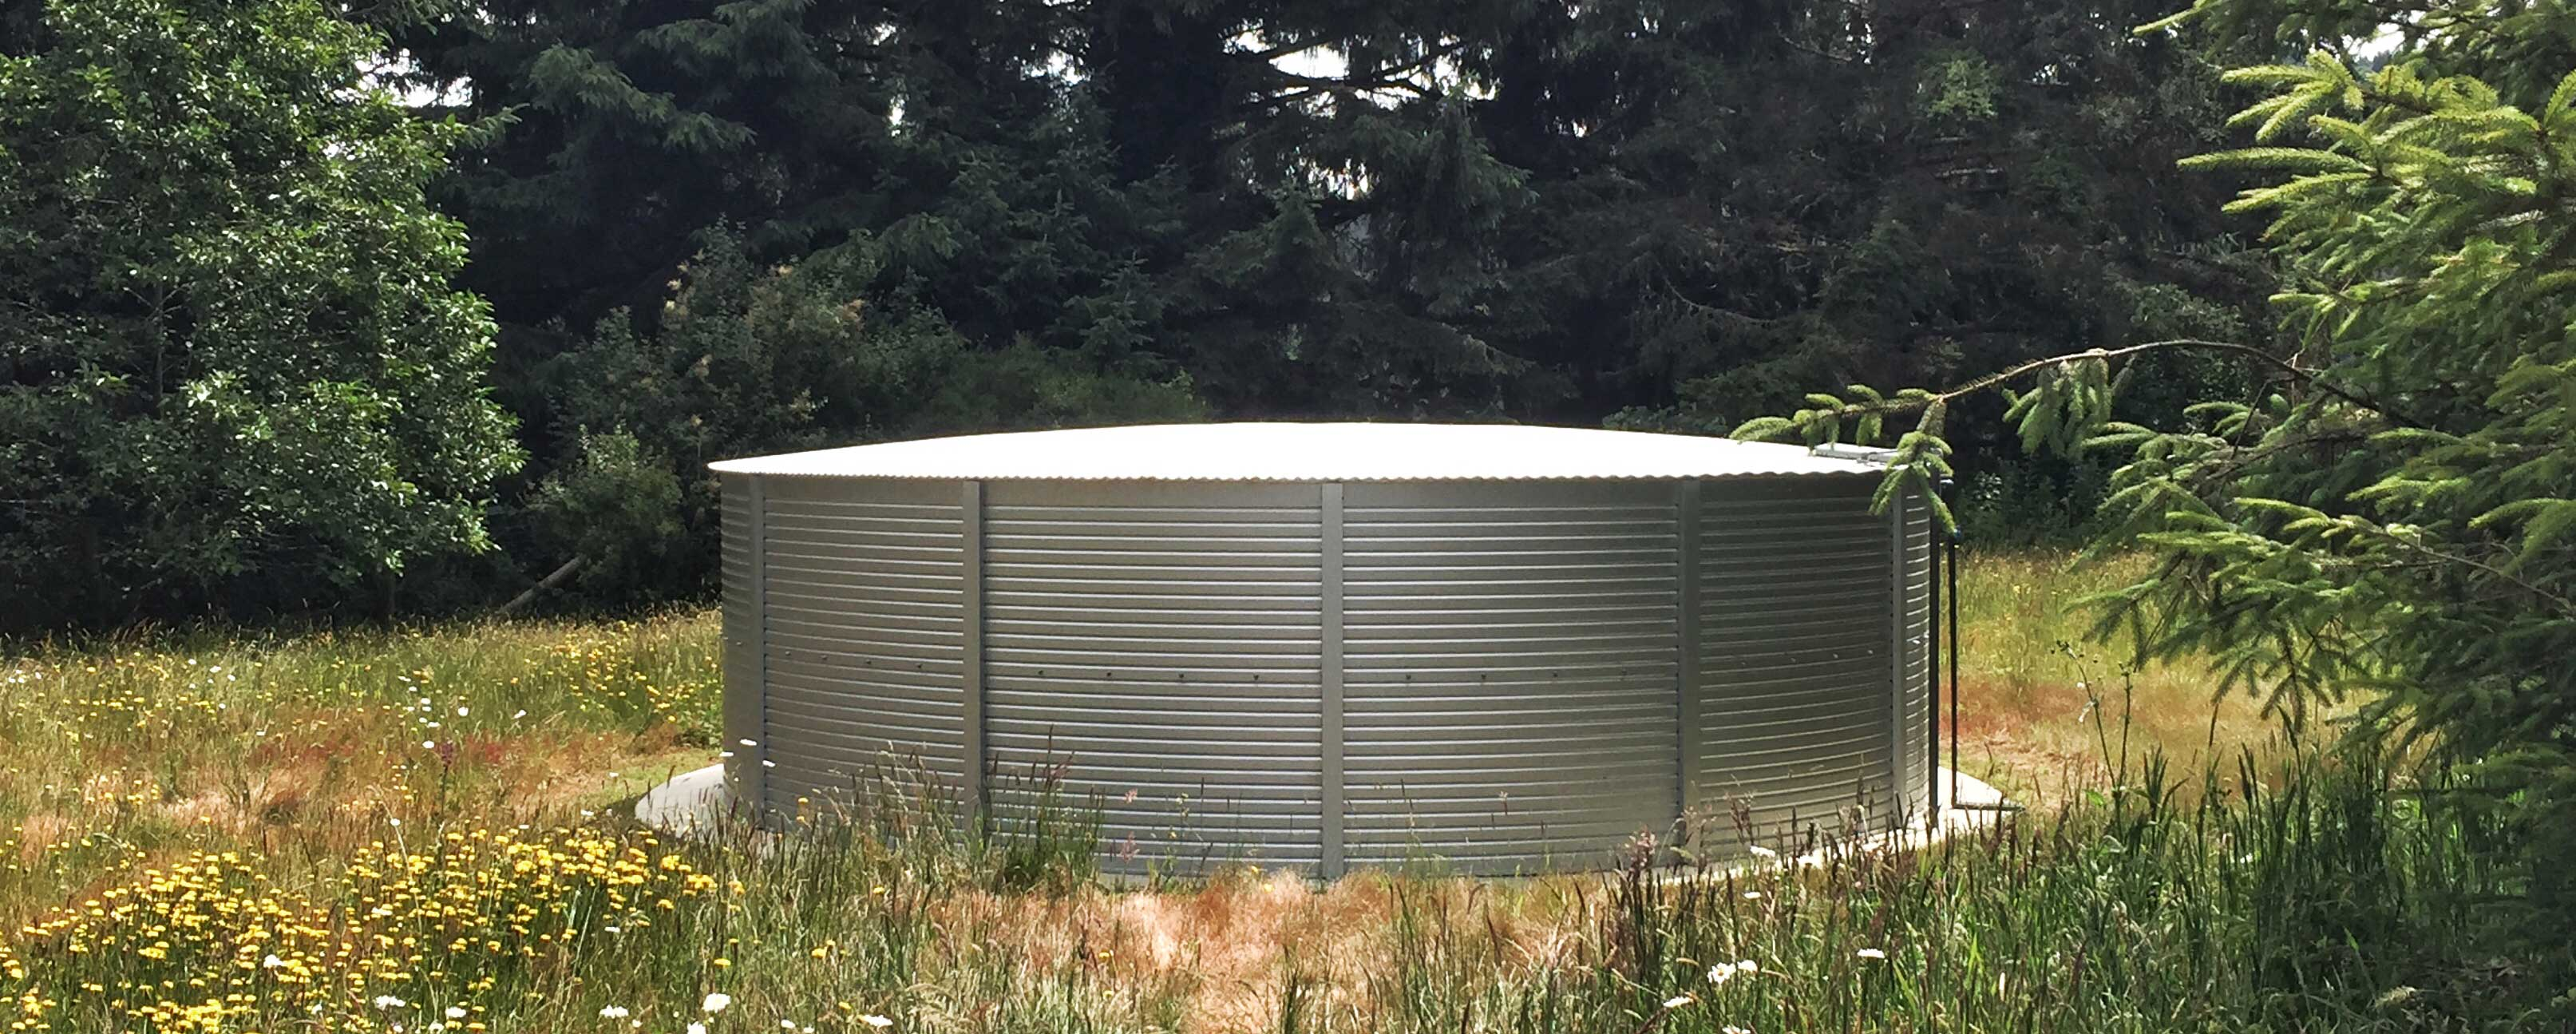 30,000 gallon water tanks in California